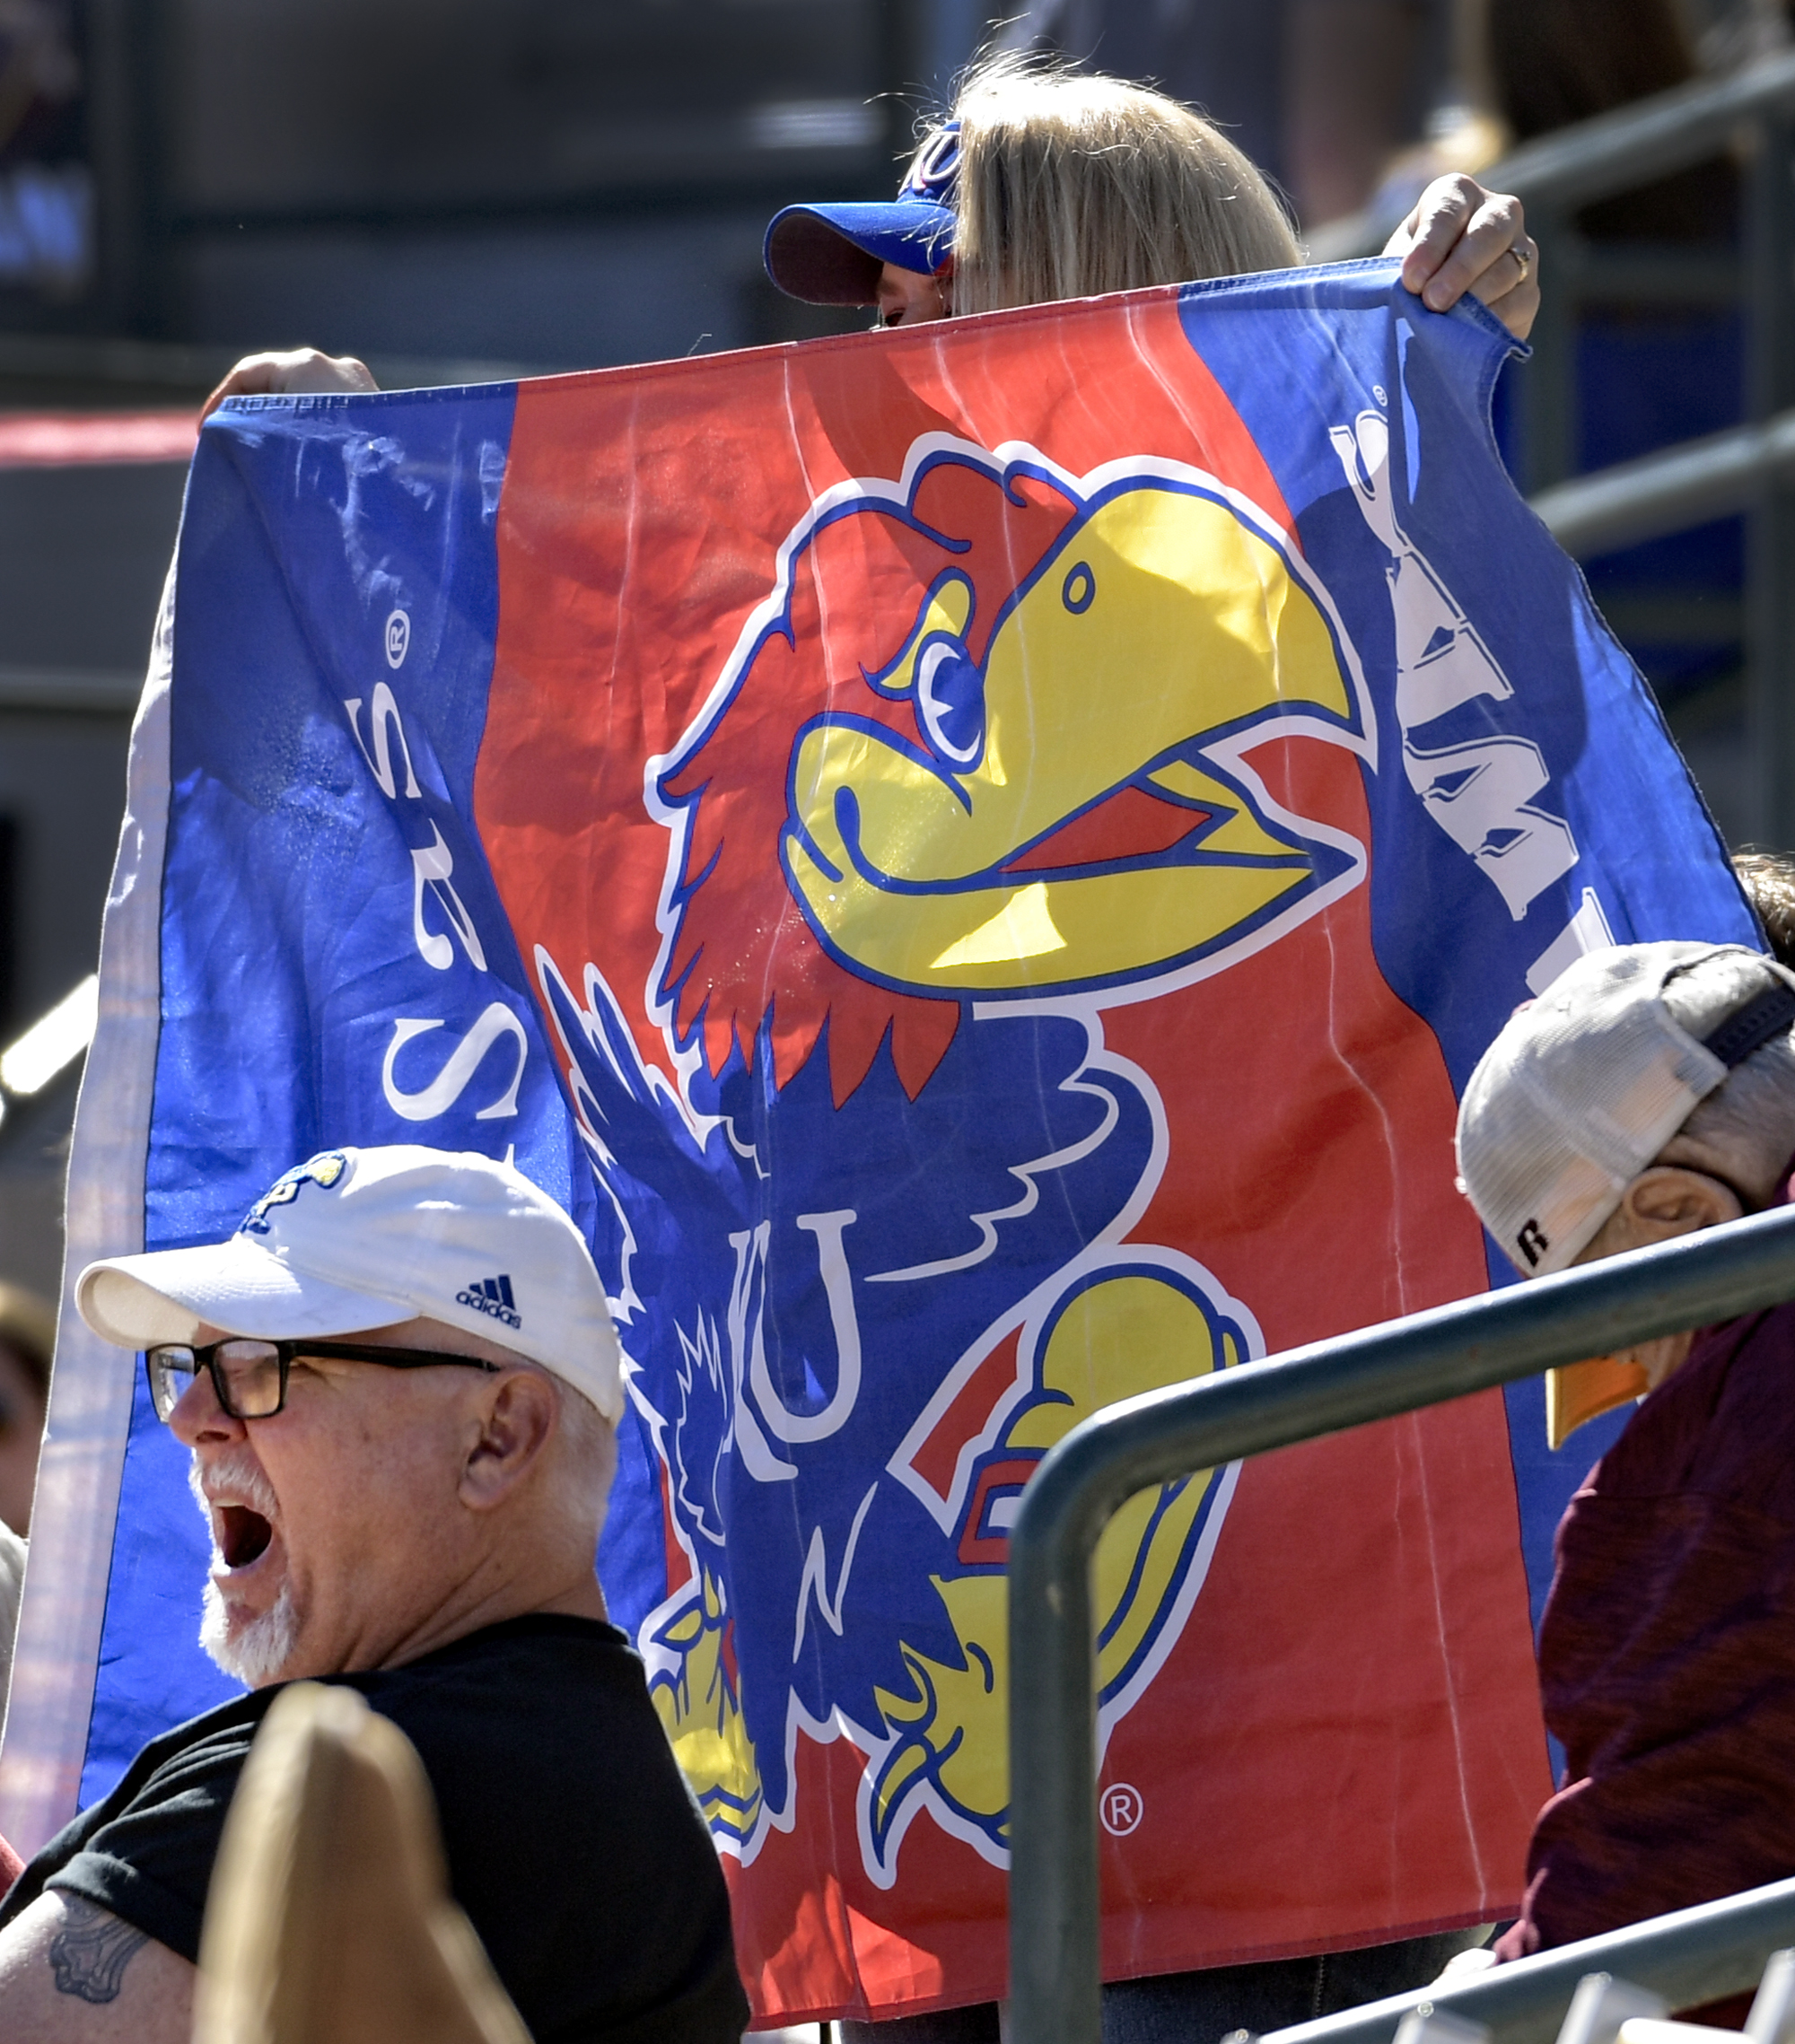 KU fans cheered on the Jayhawks in Tempe, Arizona.